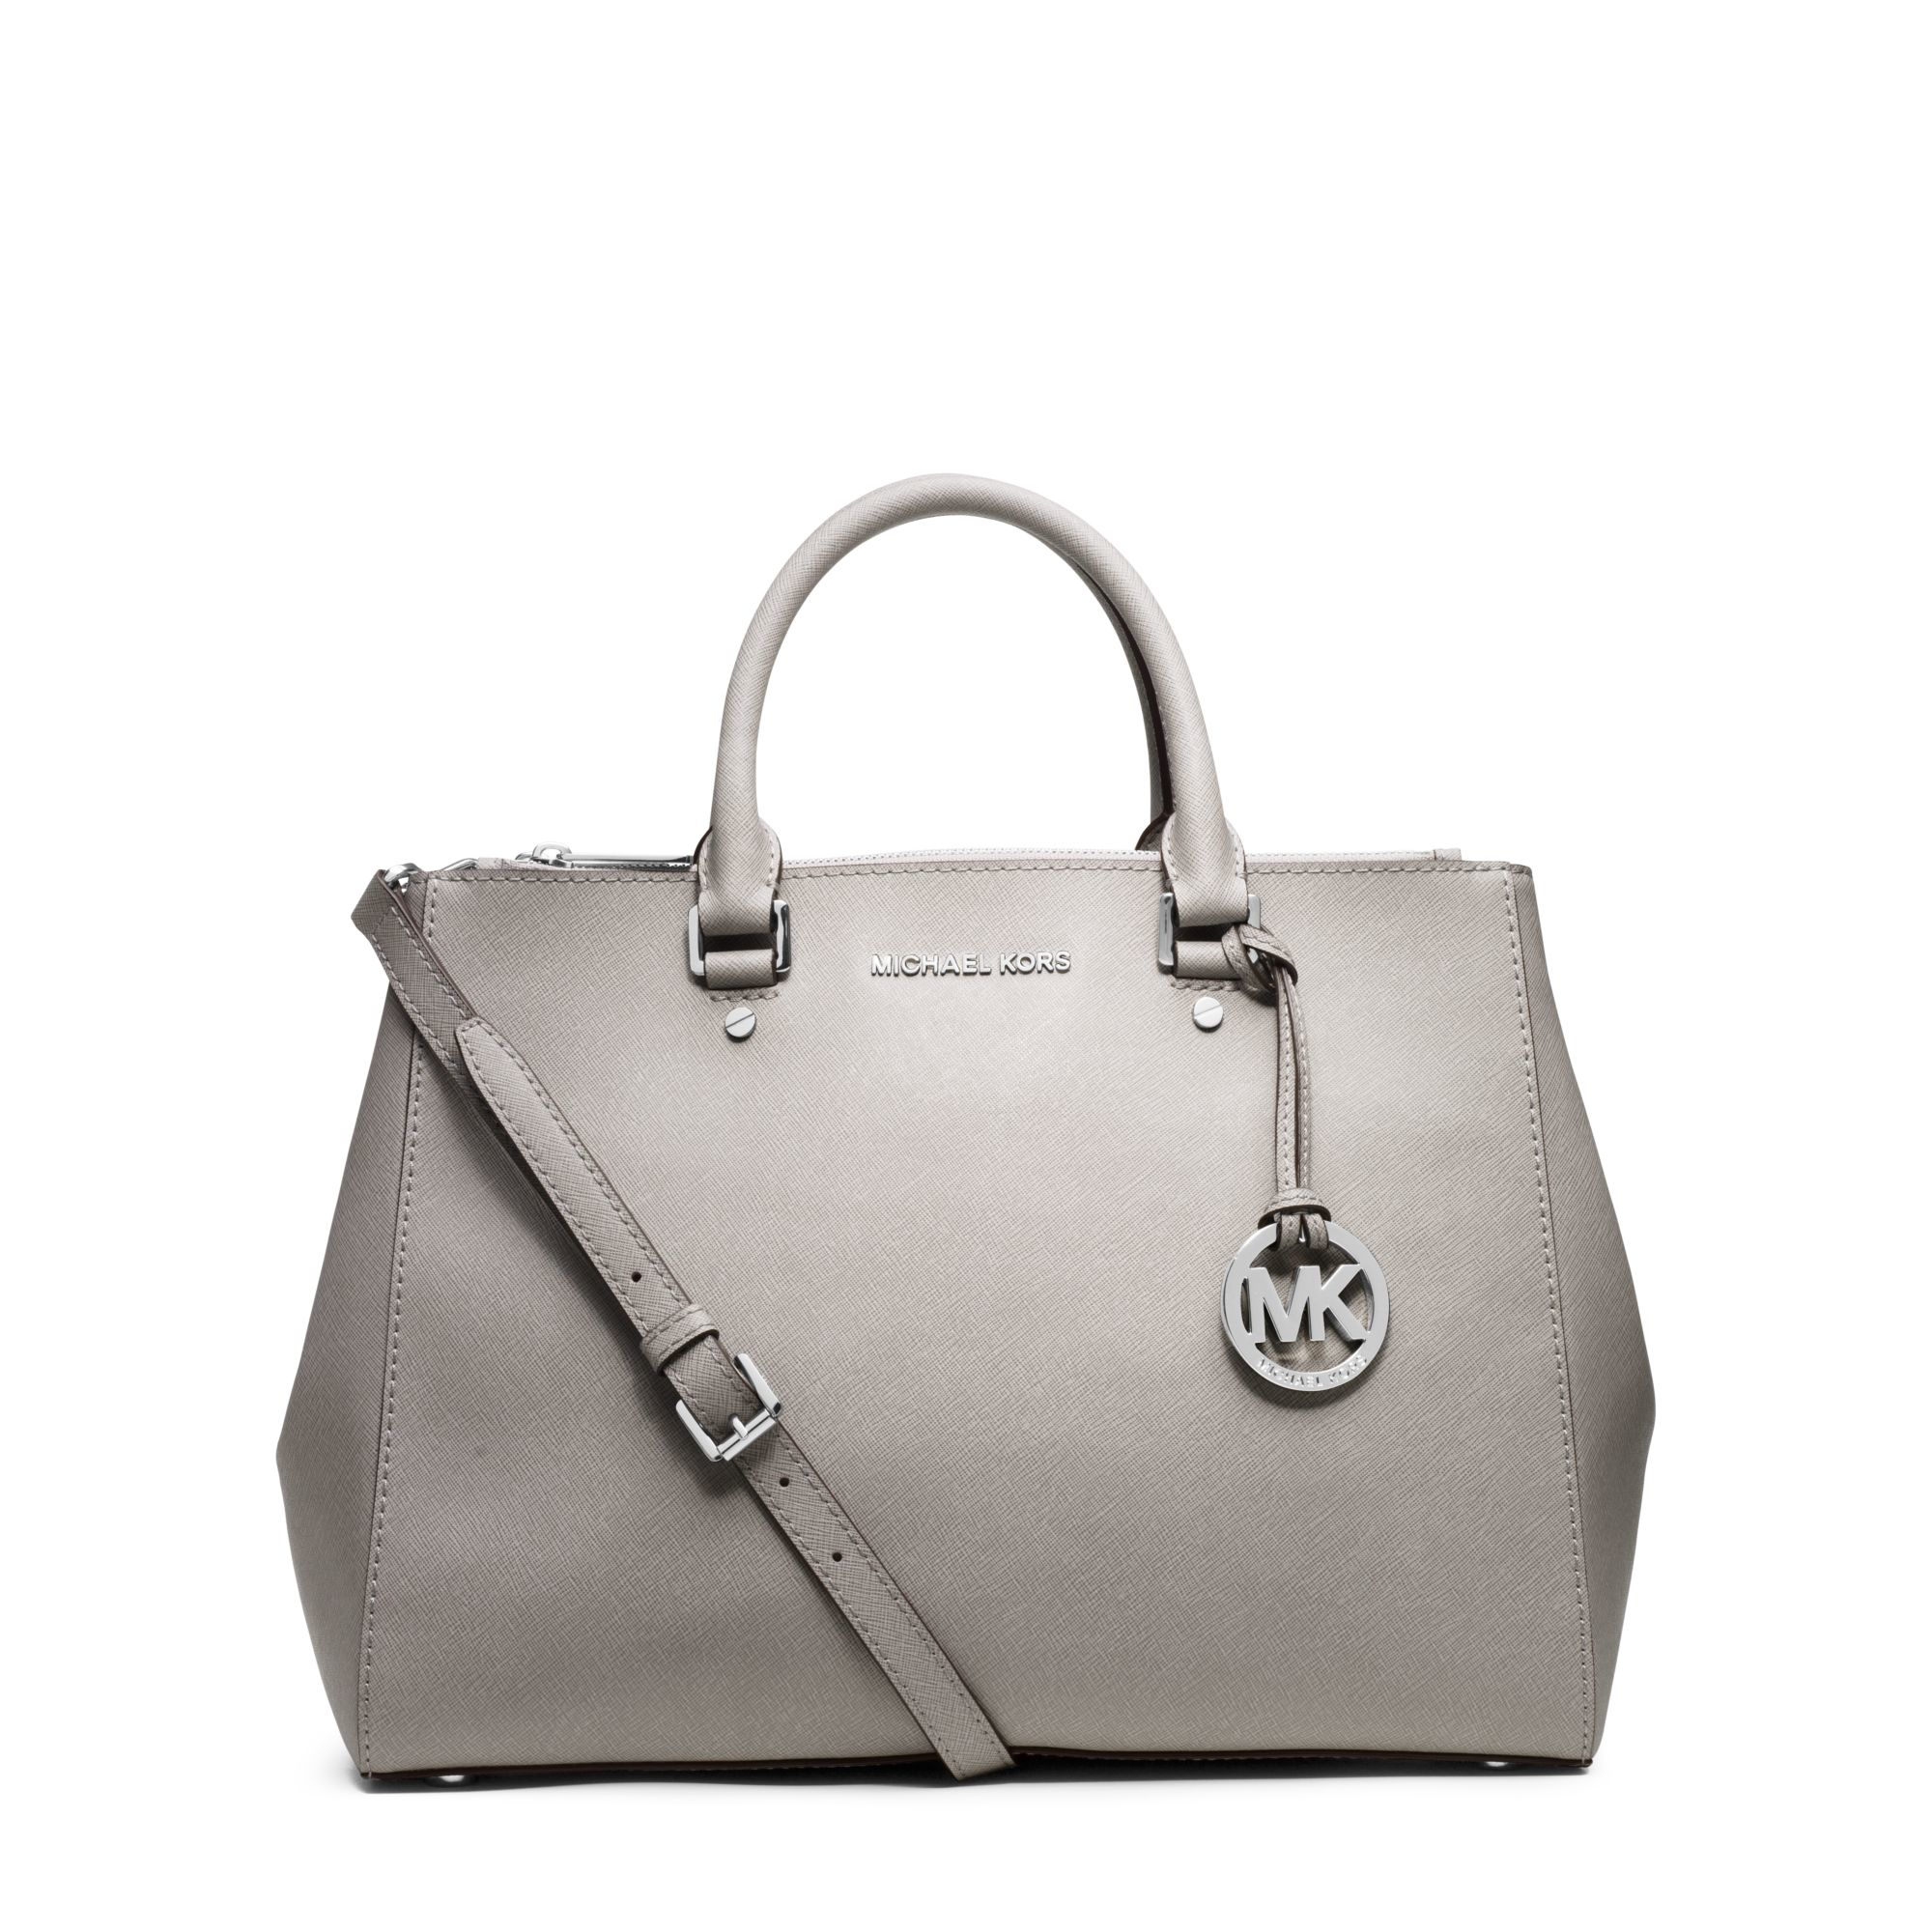 b0b9d78003ae ... get lyst michael kors sutton saffiano leather satchel in white ba4ee  9a3a1